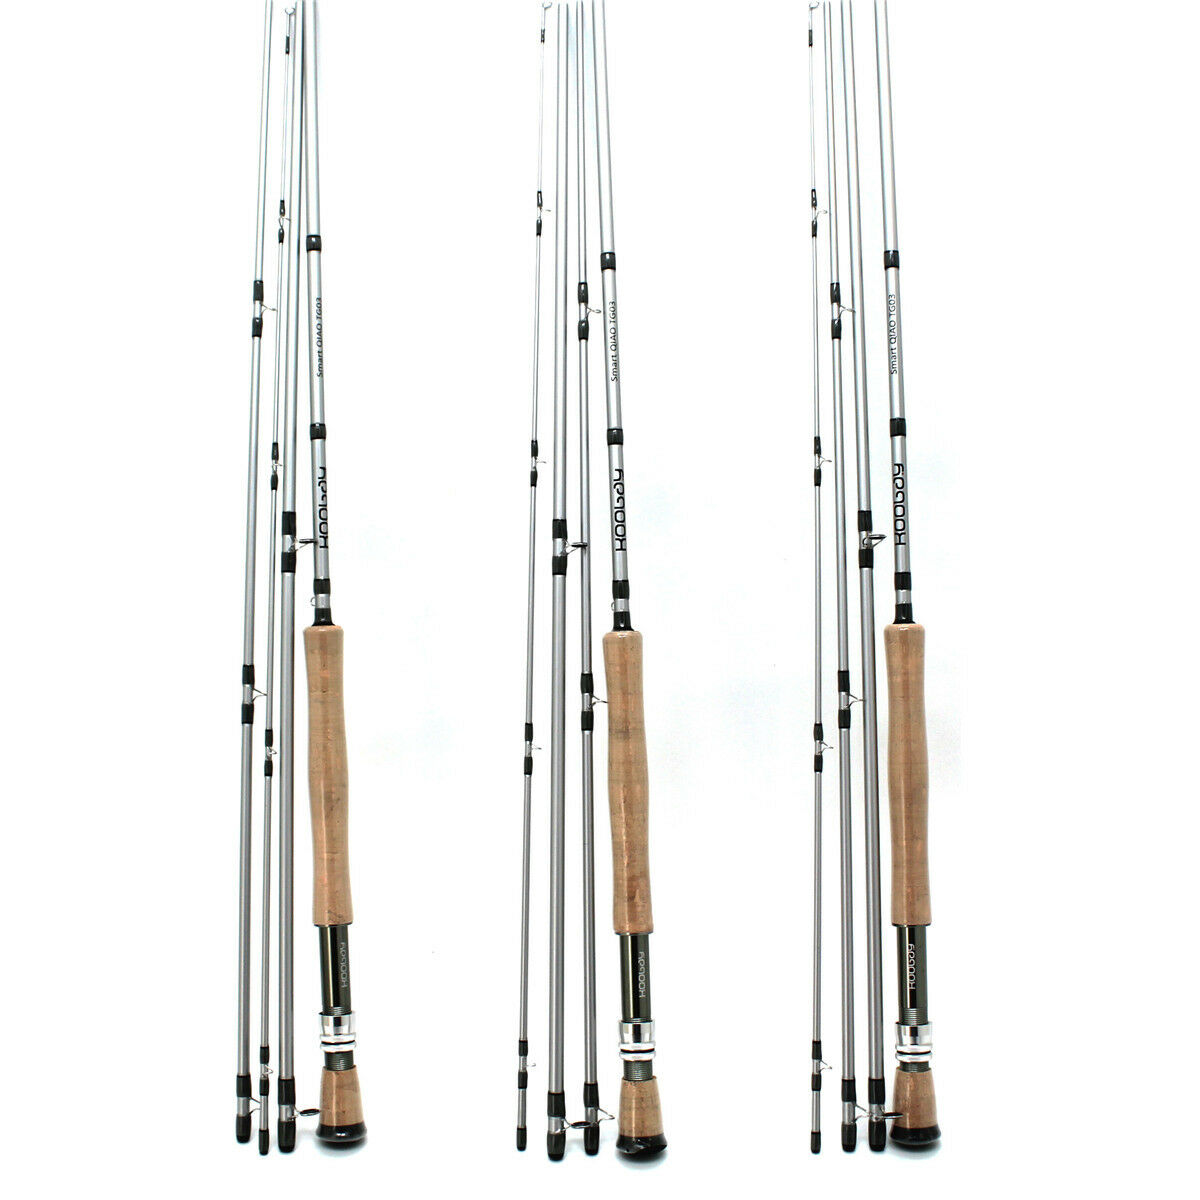 4Pcs Fly Fishing  Rods Fast Action Carbon Fiber Light Crappie Bass Travel Poles  fashion brands